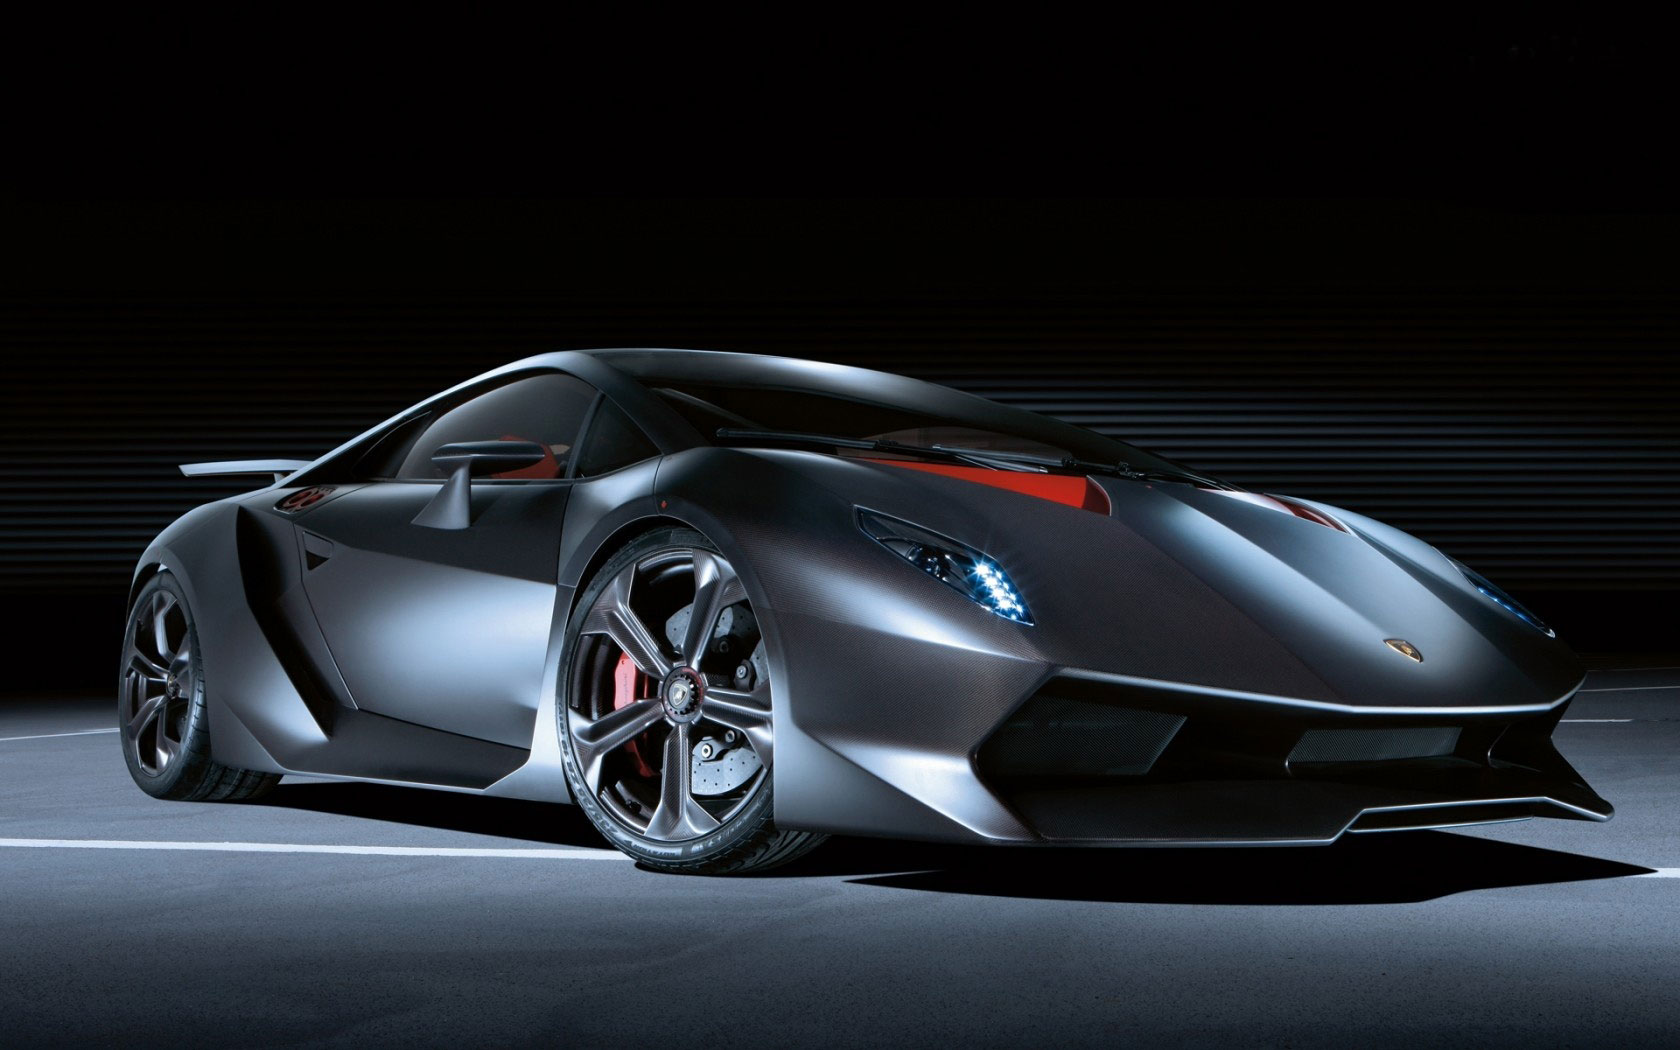 Lamborghini Sesto Elemento- too fast to be legally driven on U.S. roads